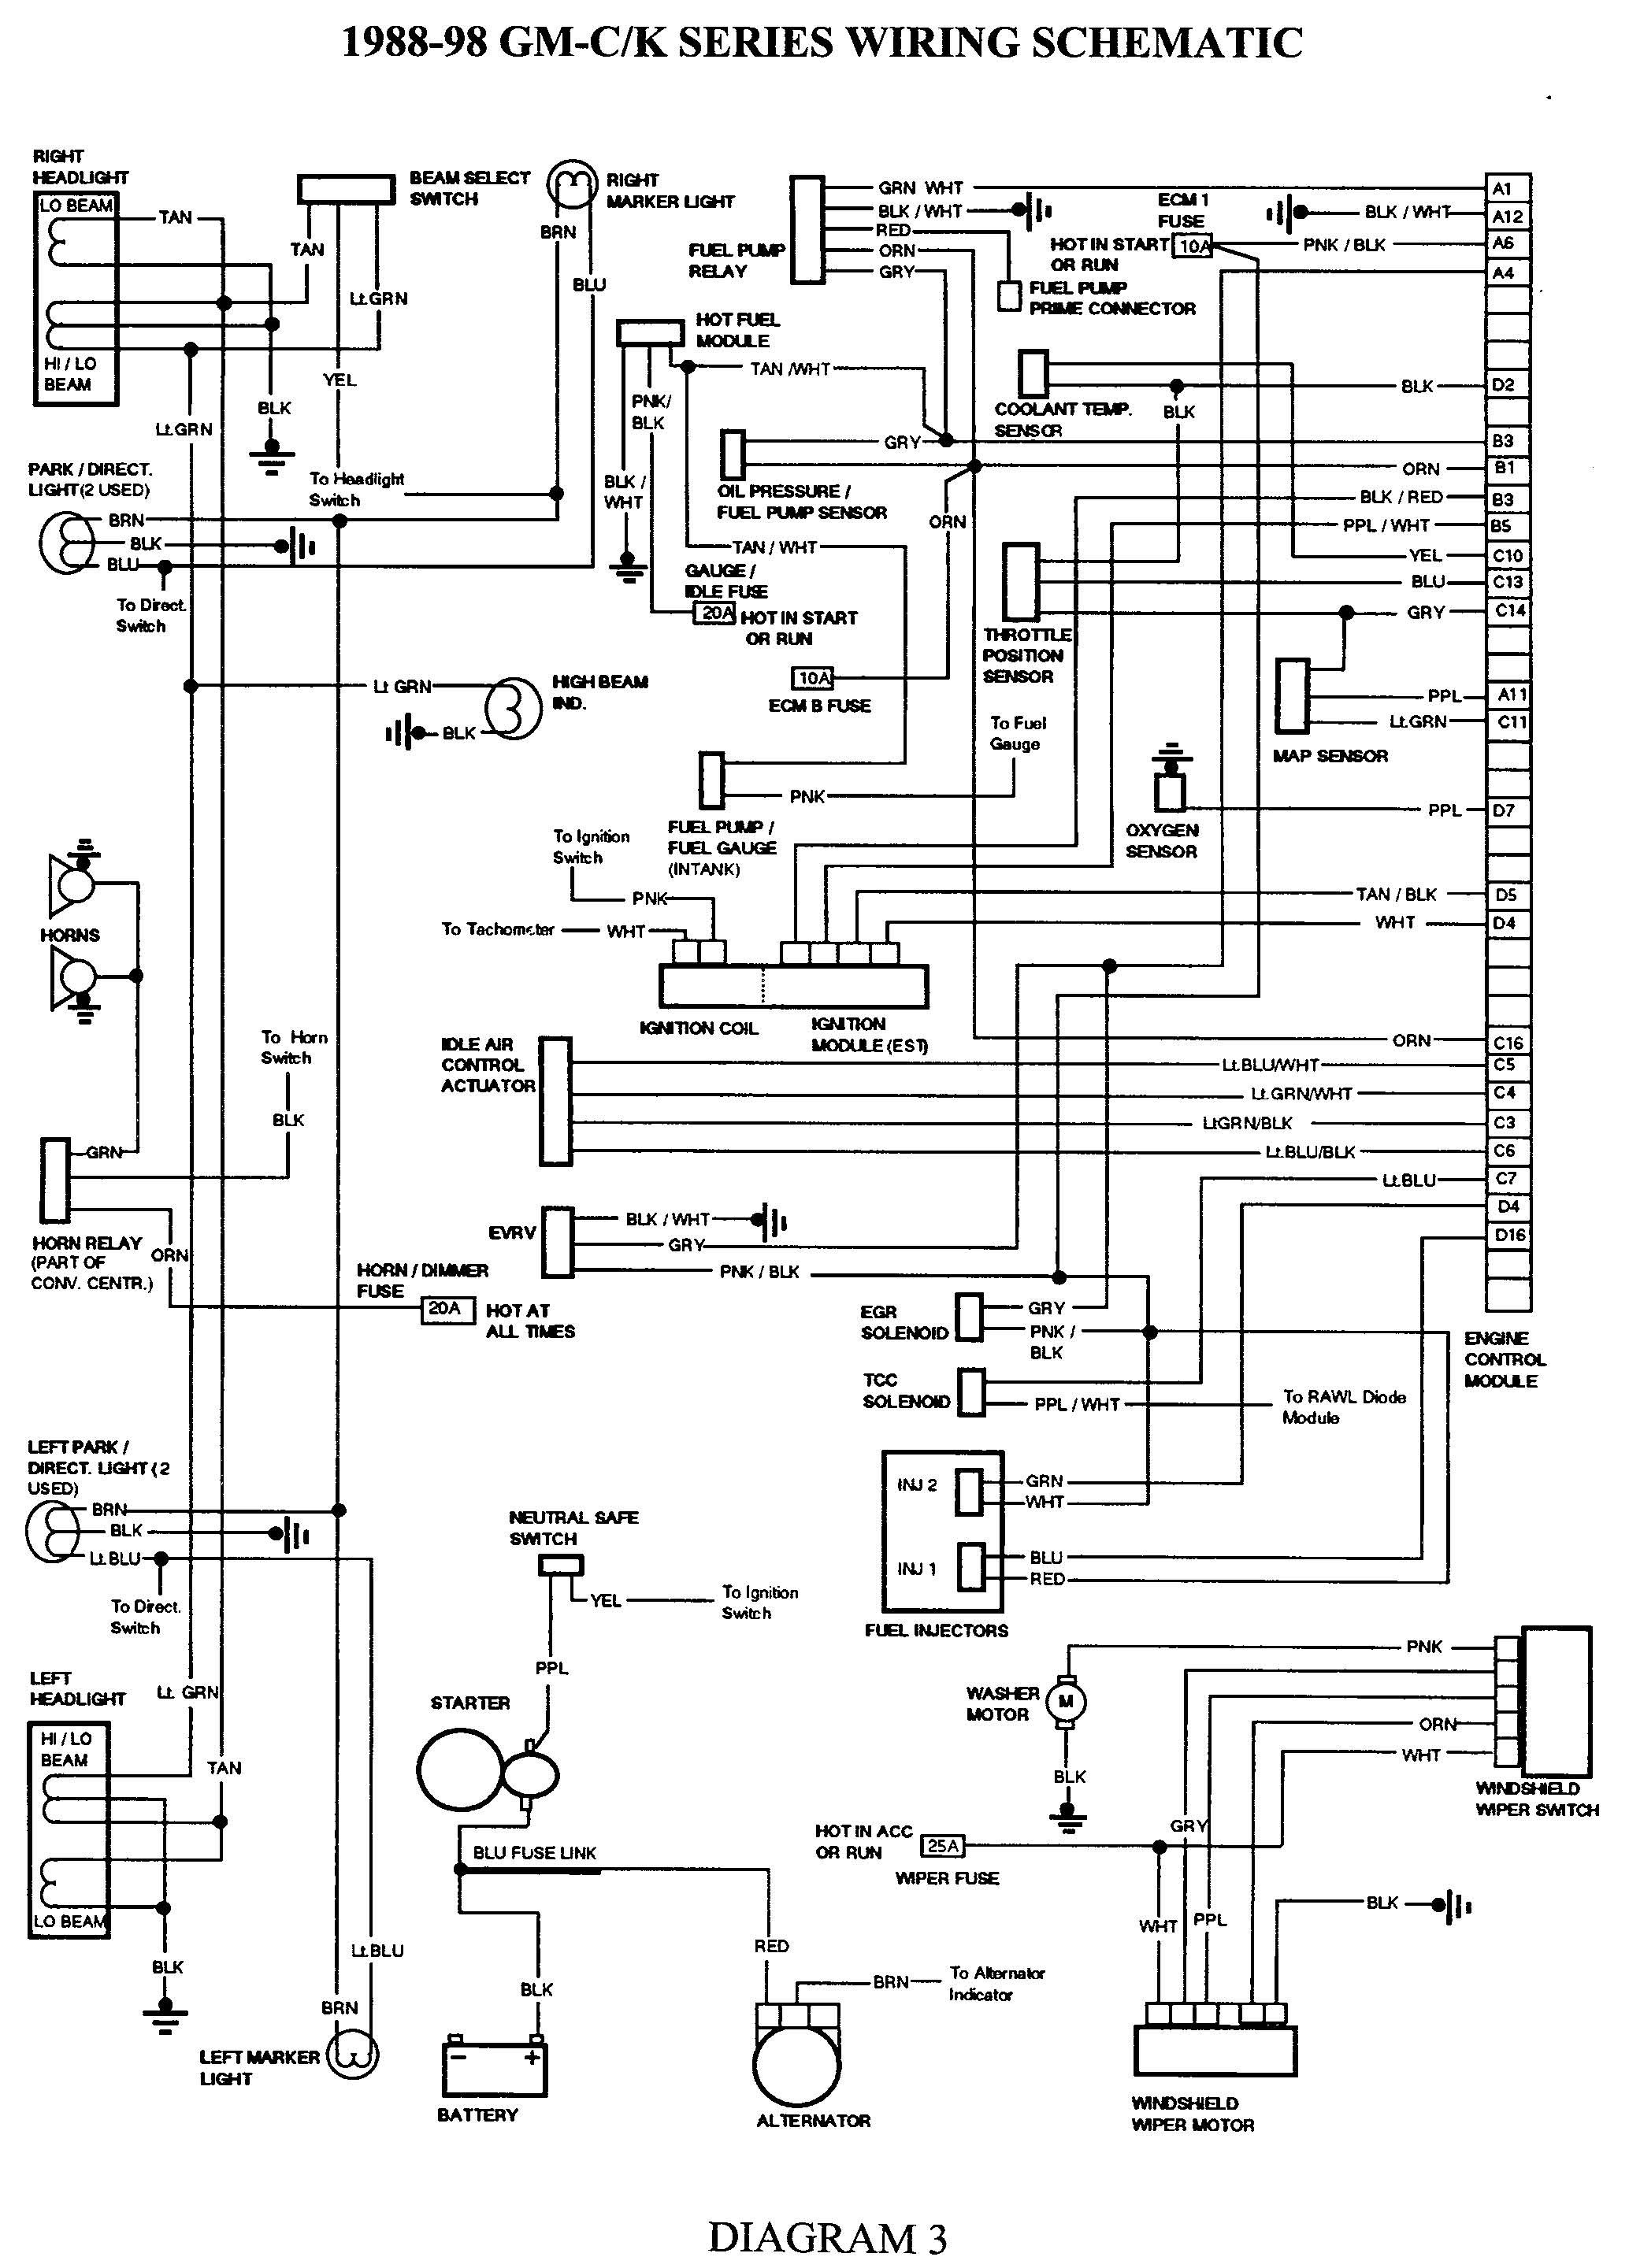 98 Dodge Ram Turn Signal Wiring Diagram Download Diagrams Fuse For Gmc Sierra Trusted U2022 Rh 149 28 242 213 1998 3500 Trailer Stereo